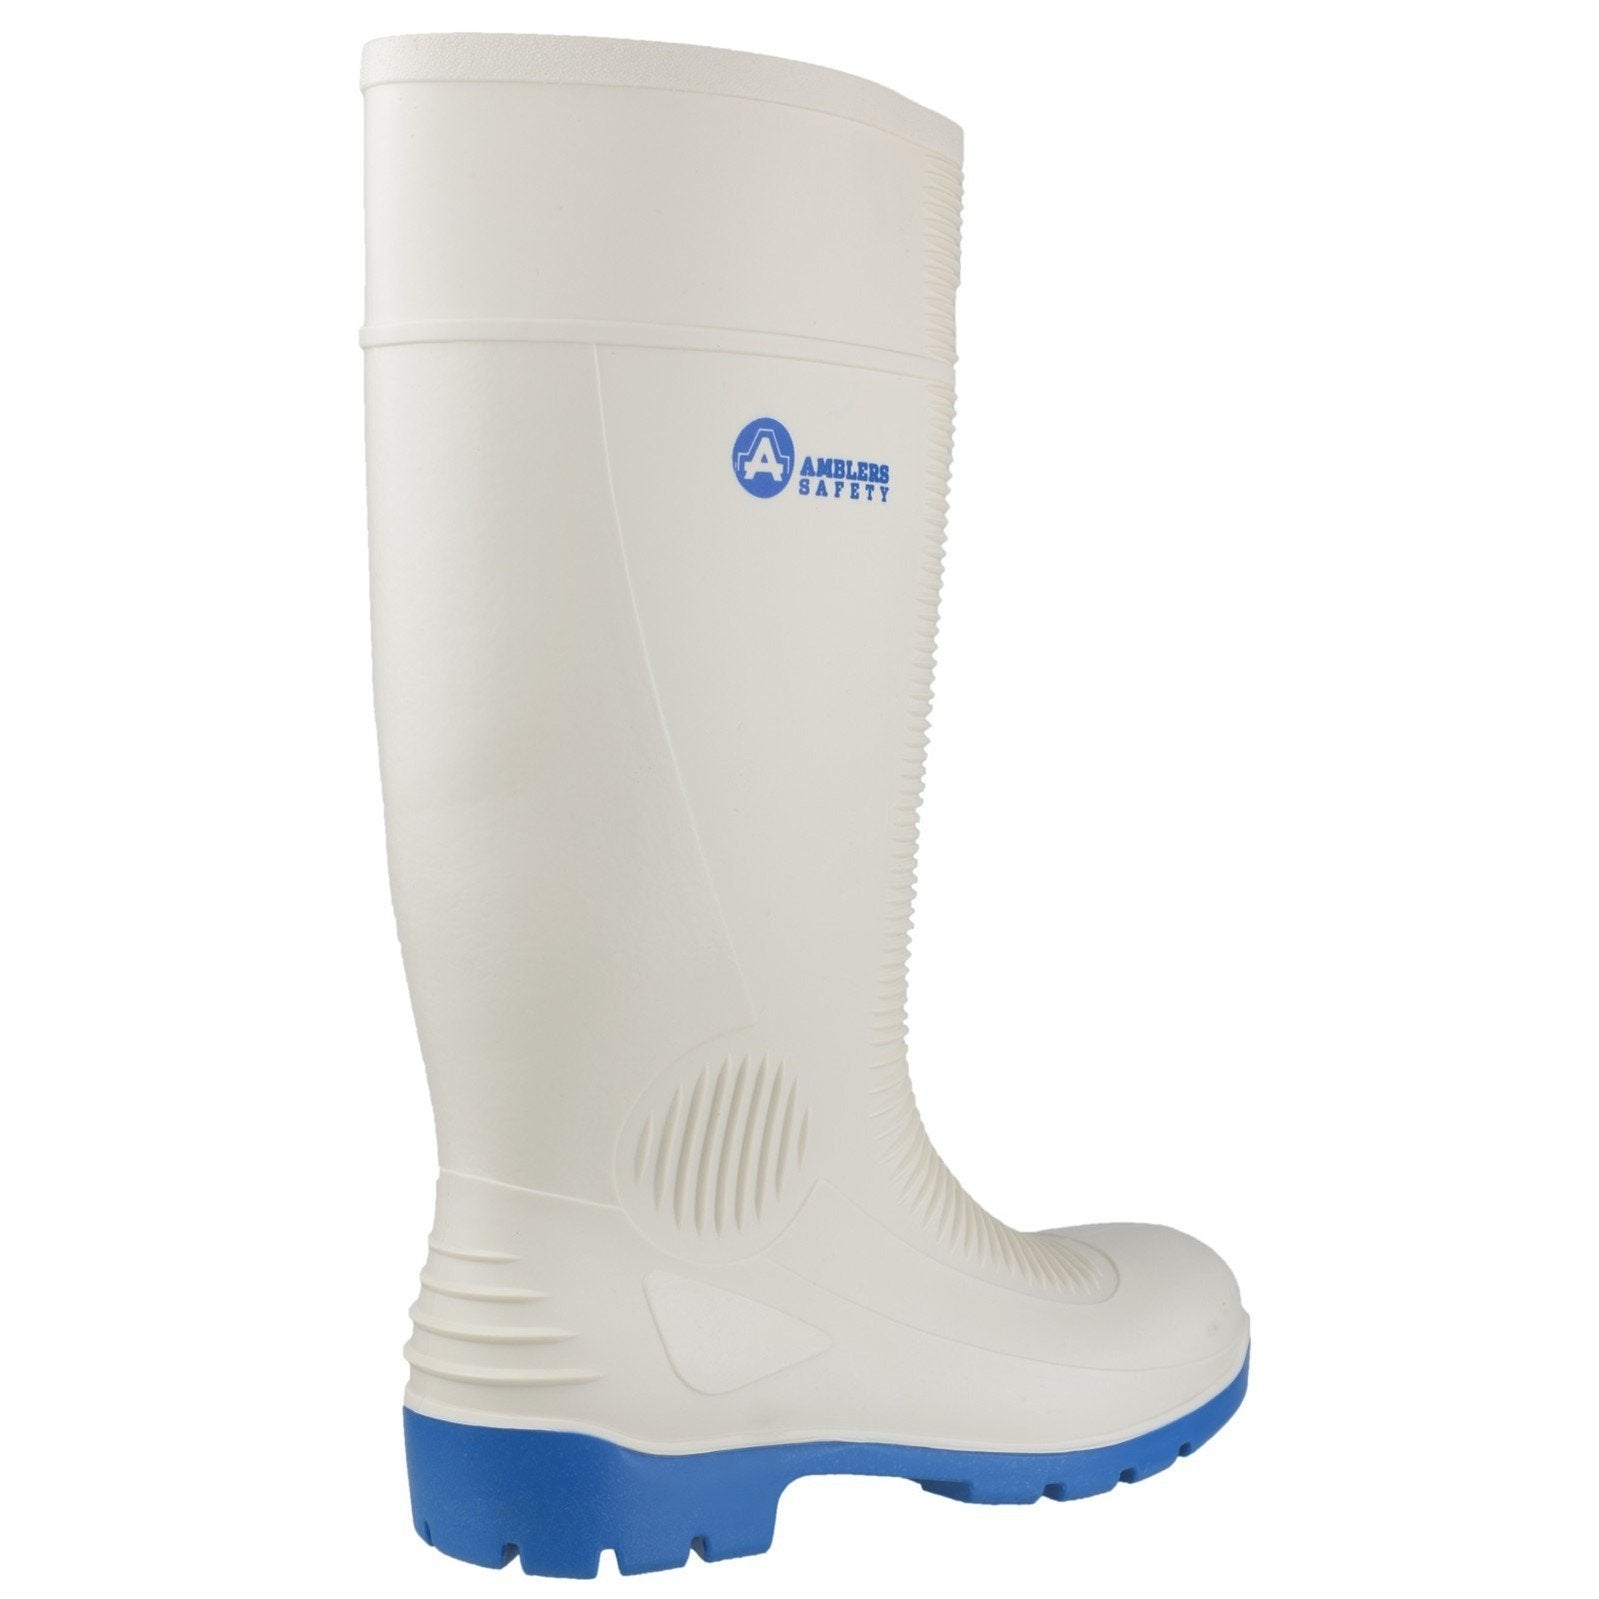 Amblers Safety Wellington Boots